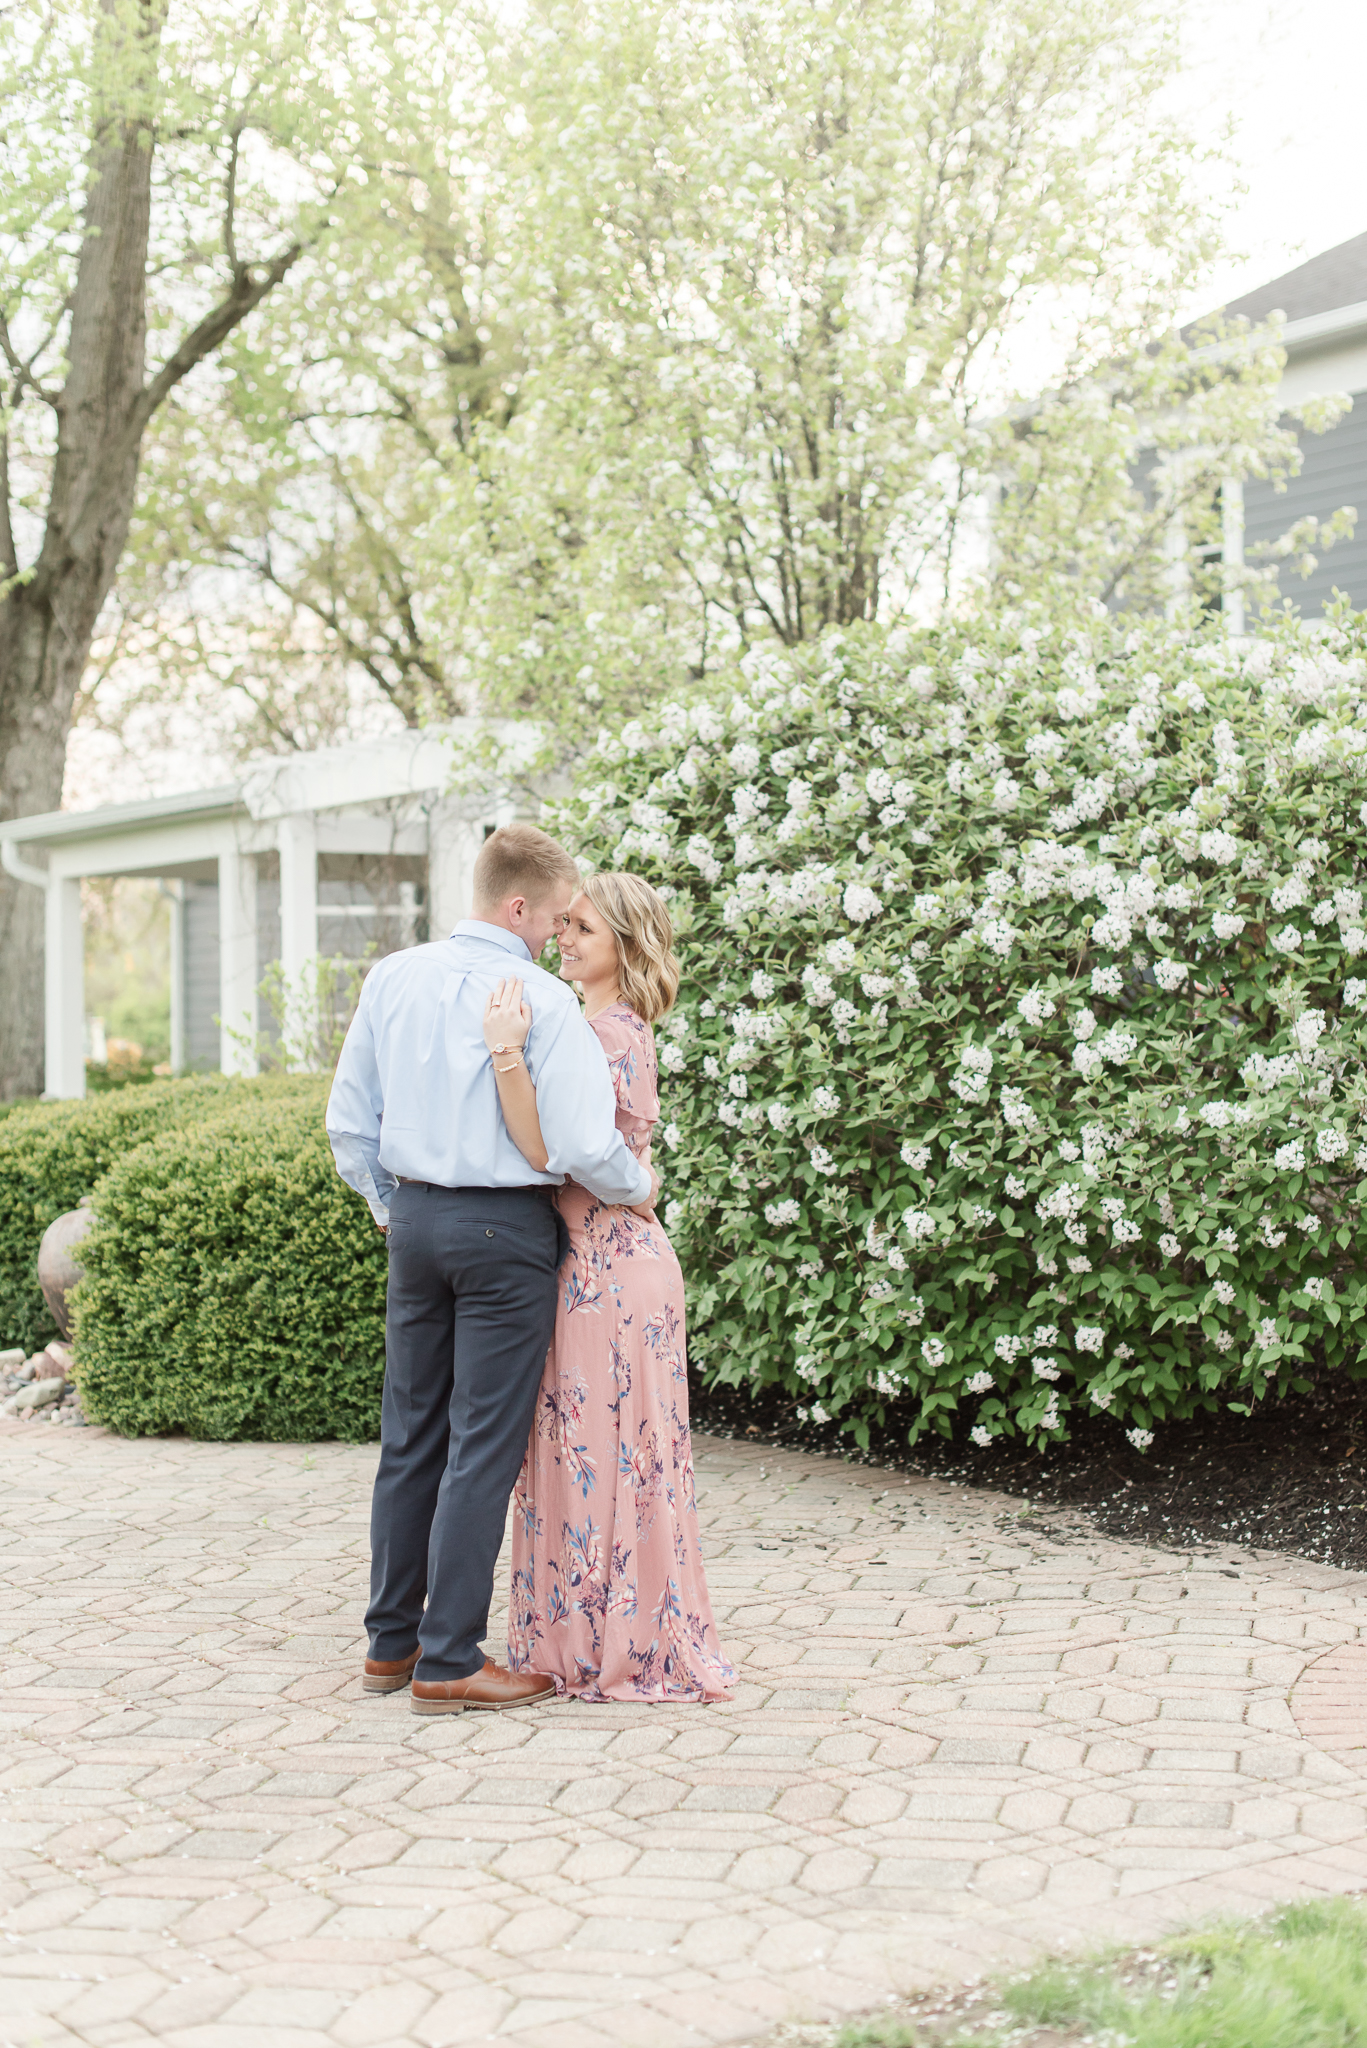 Richie Woods Nature Preserve and Mustard Seed Gardens Engagement Session Wedding Photos-61.jpg